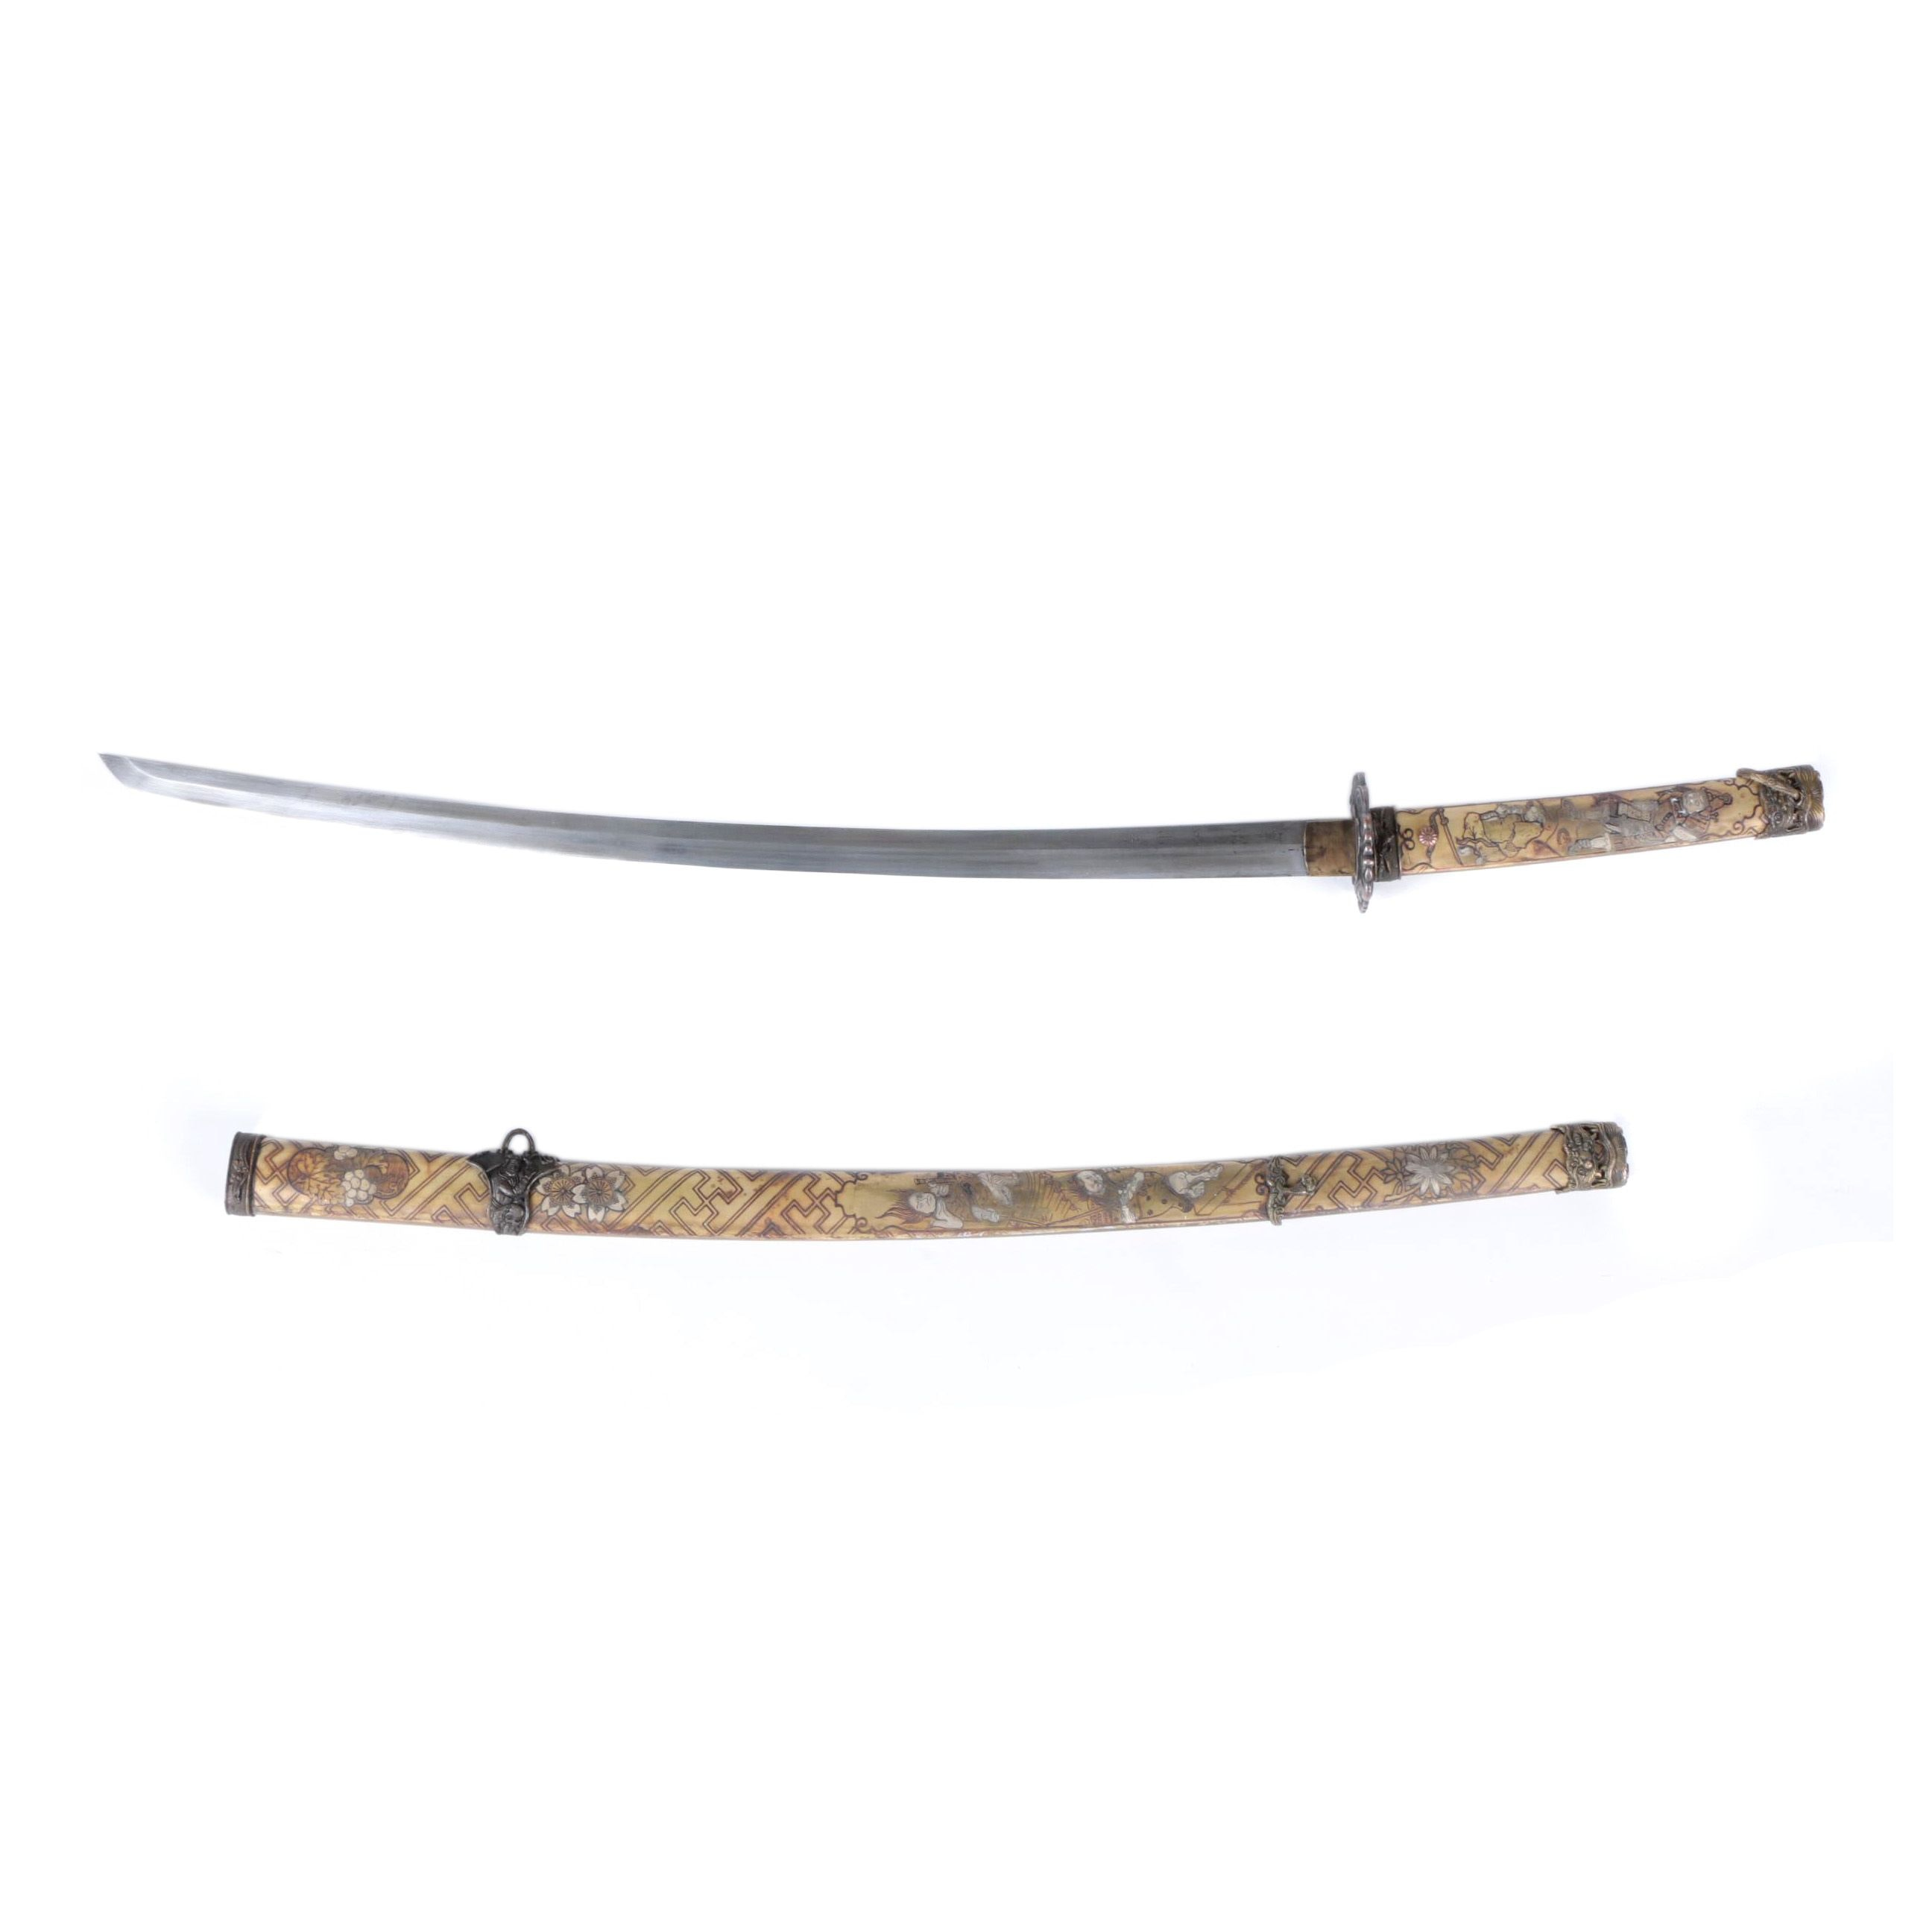 Contemporary Japanese Style Katana with Scabbard